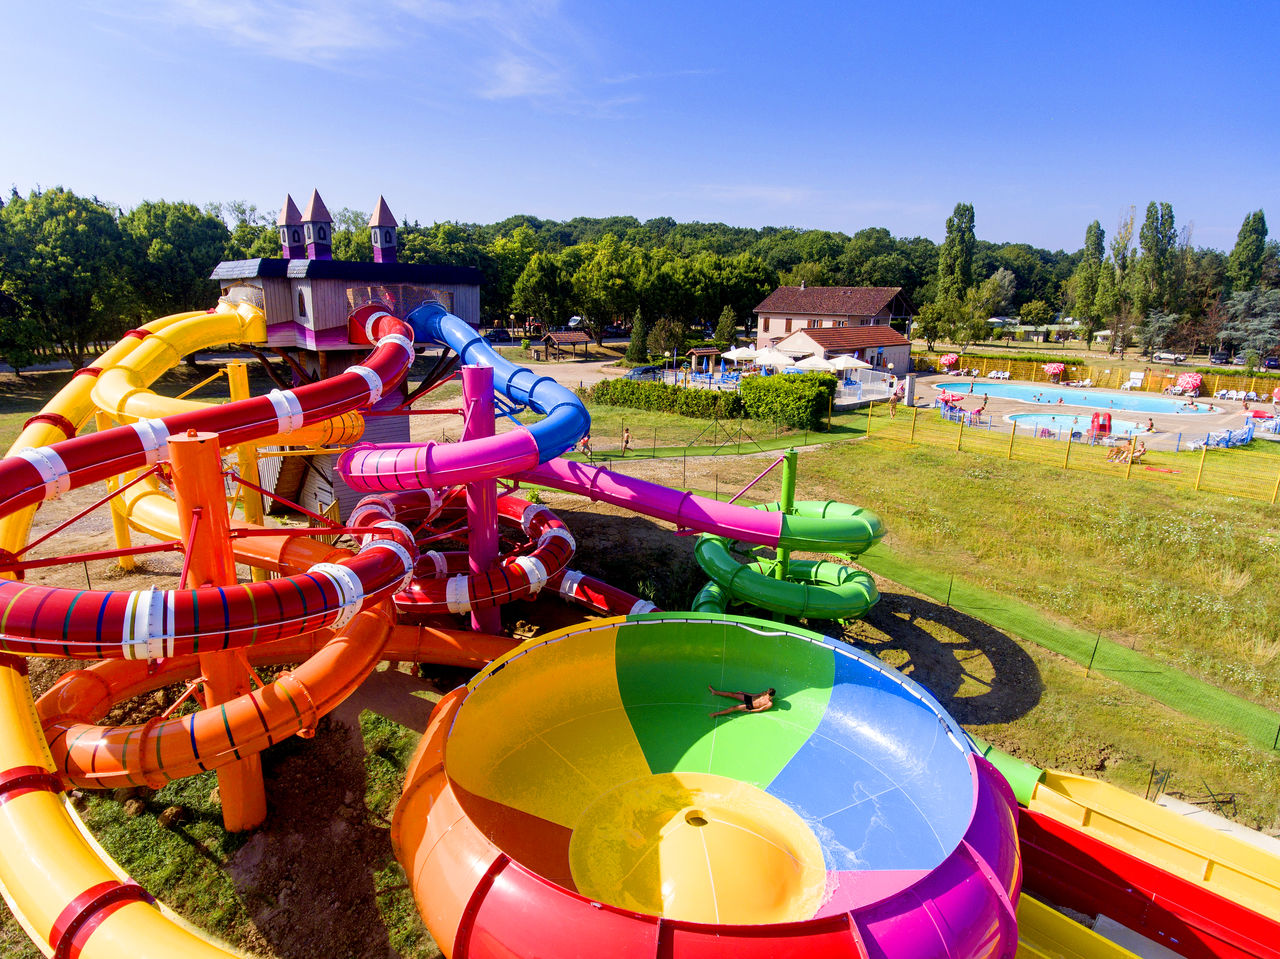 Mirabelle, Camping Lorraine - Moselle - Capfun